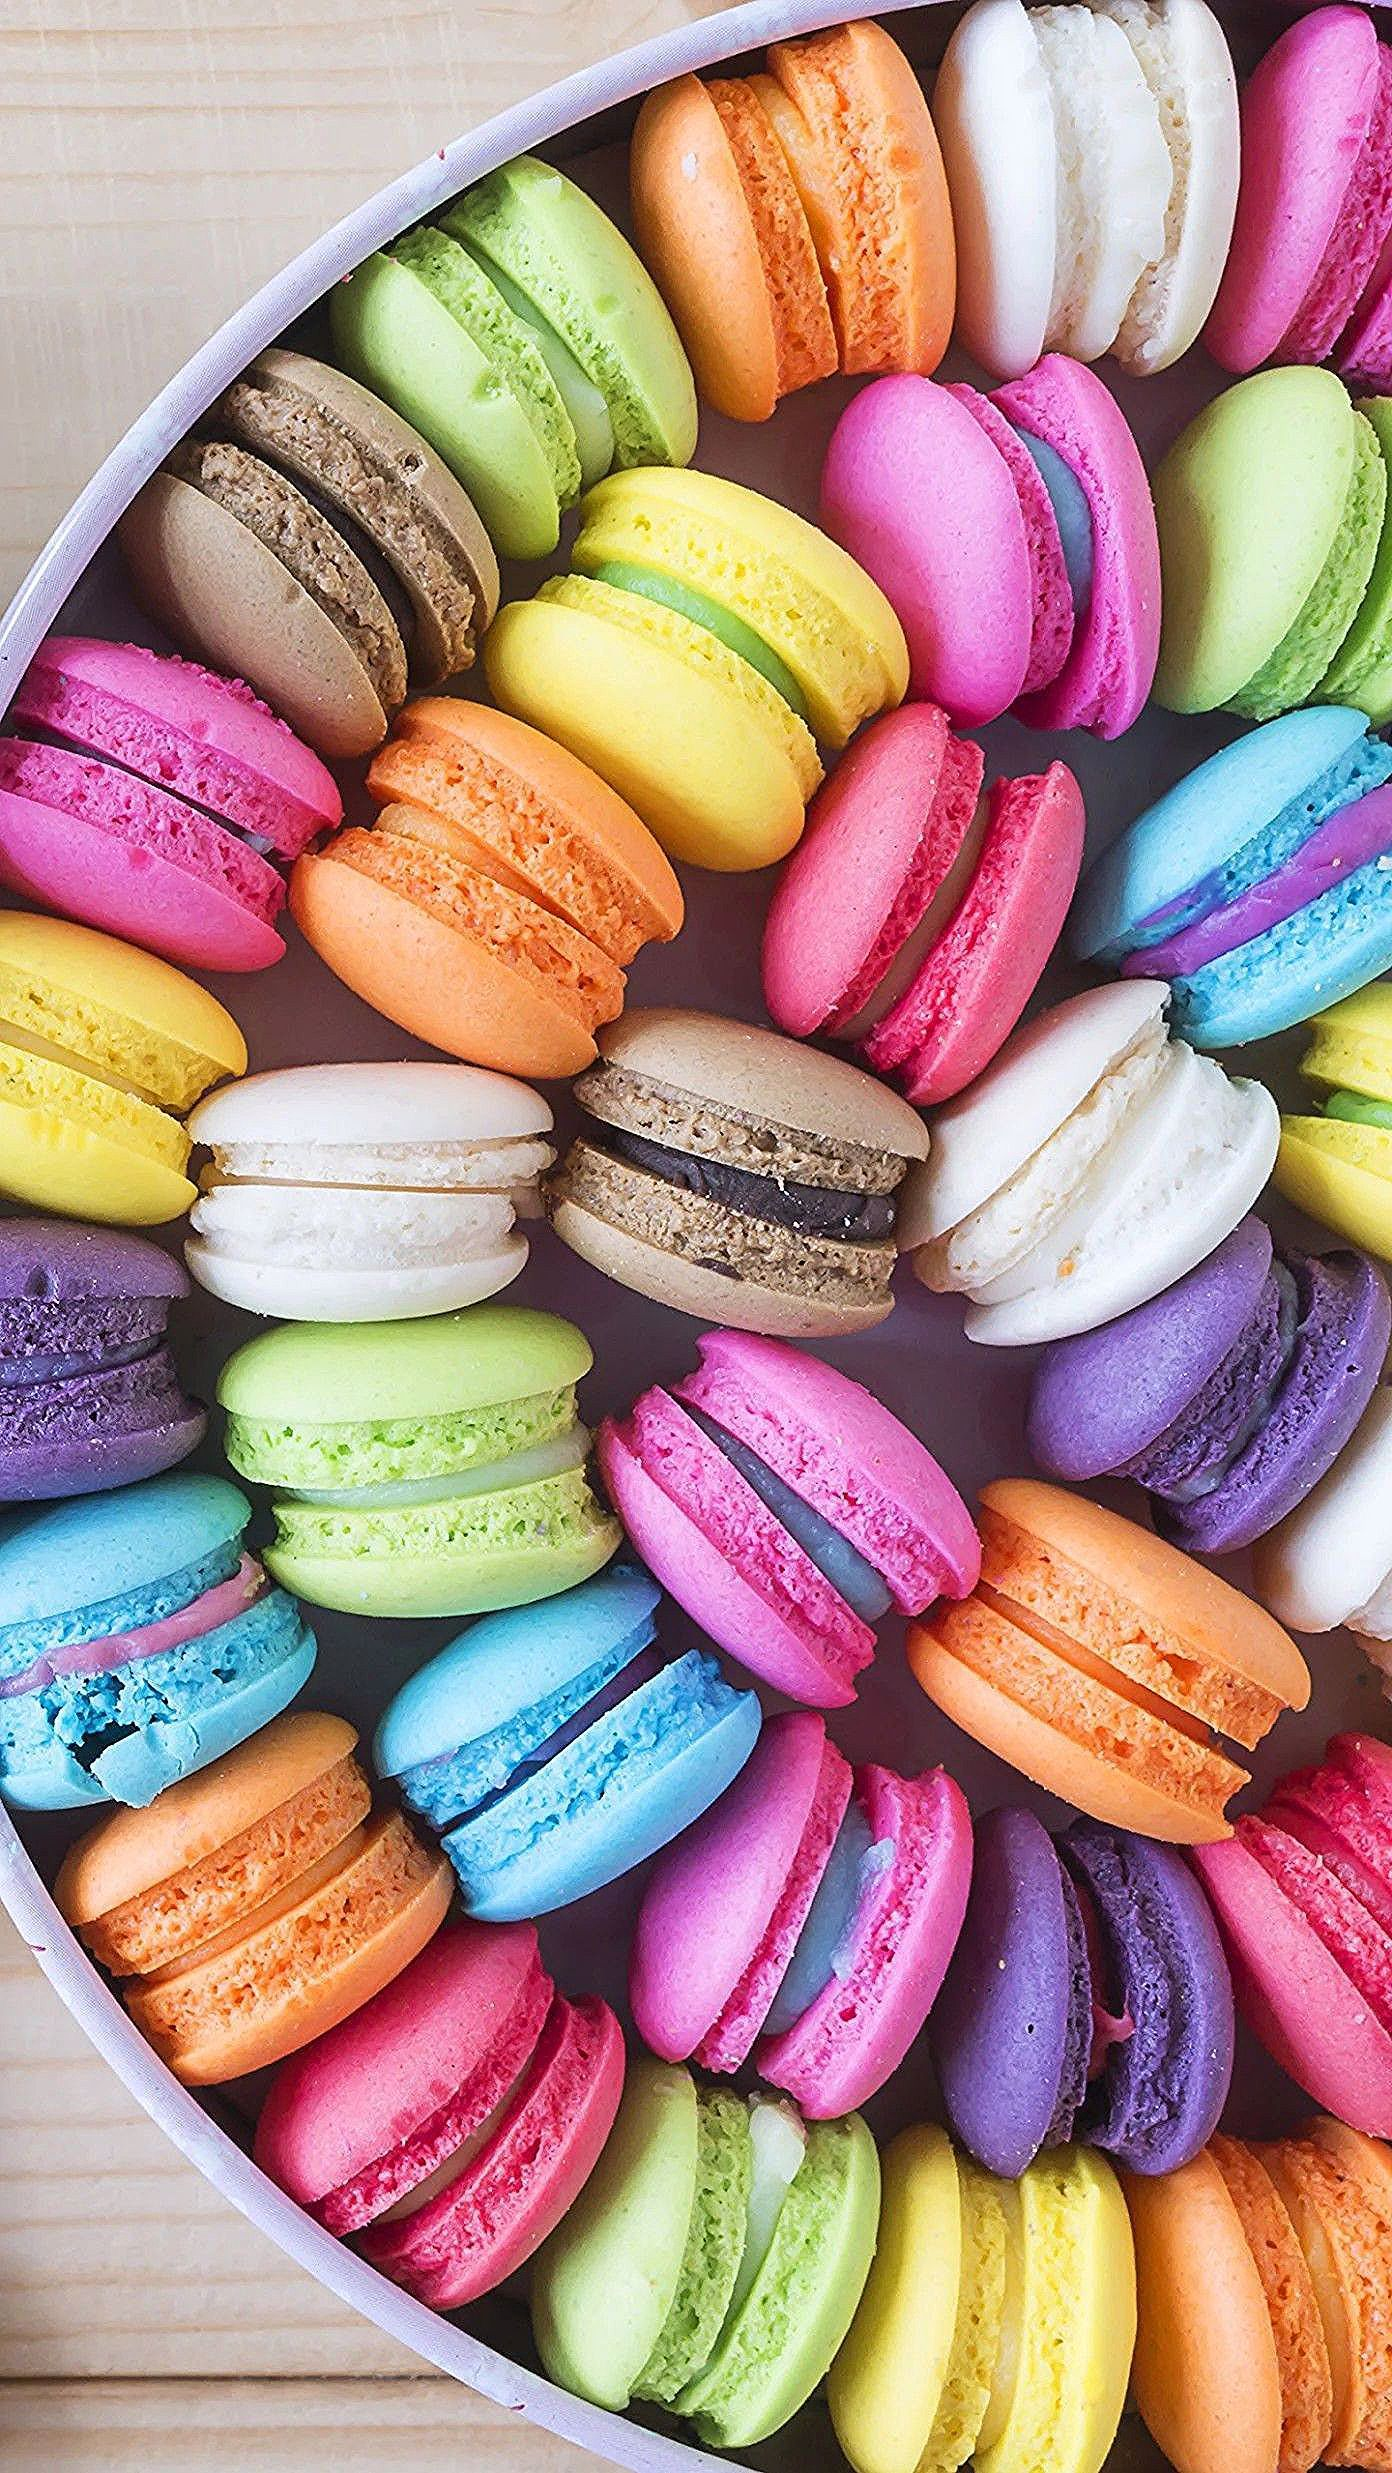 box of macarons in different bright colors in 2020 with